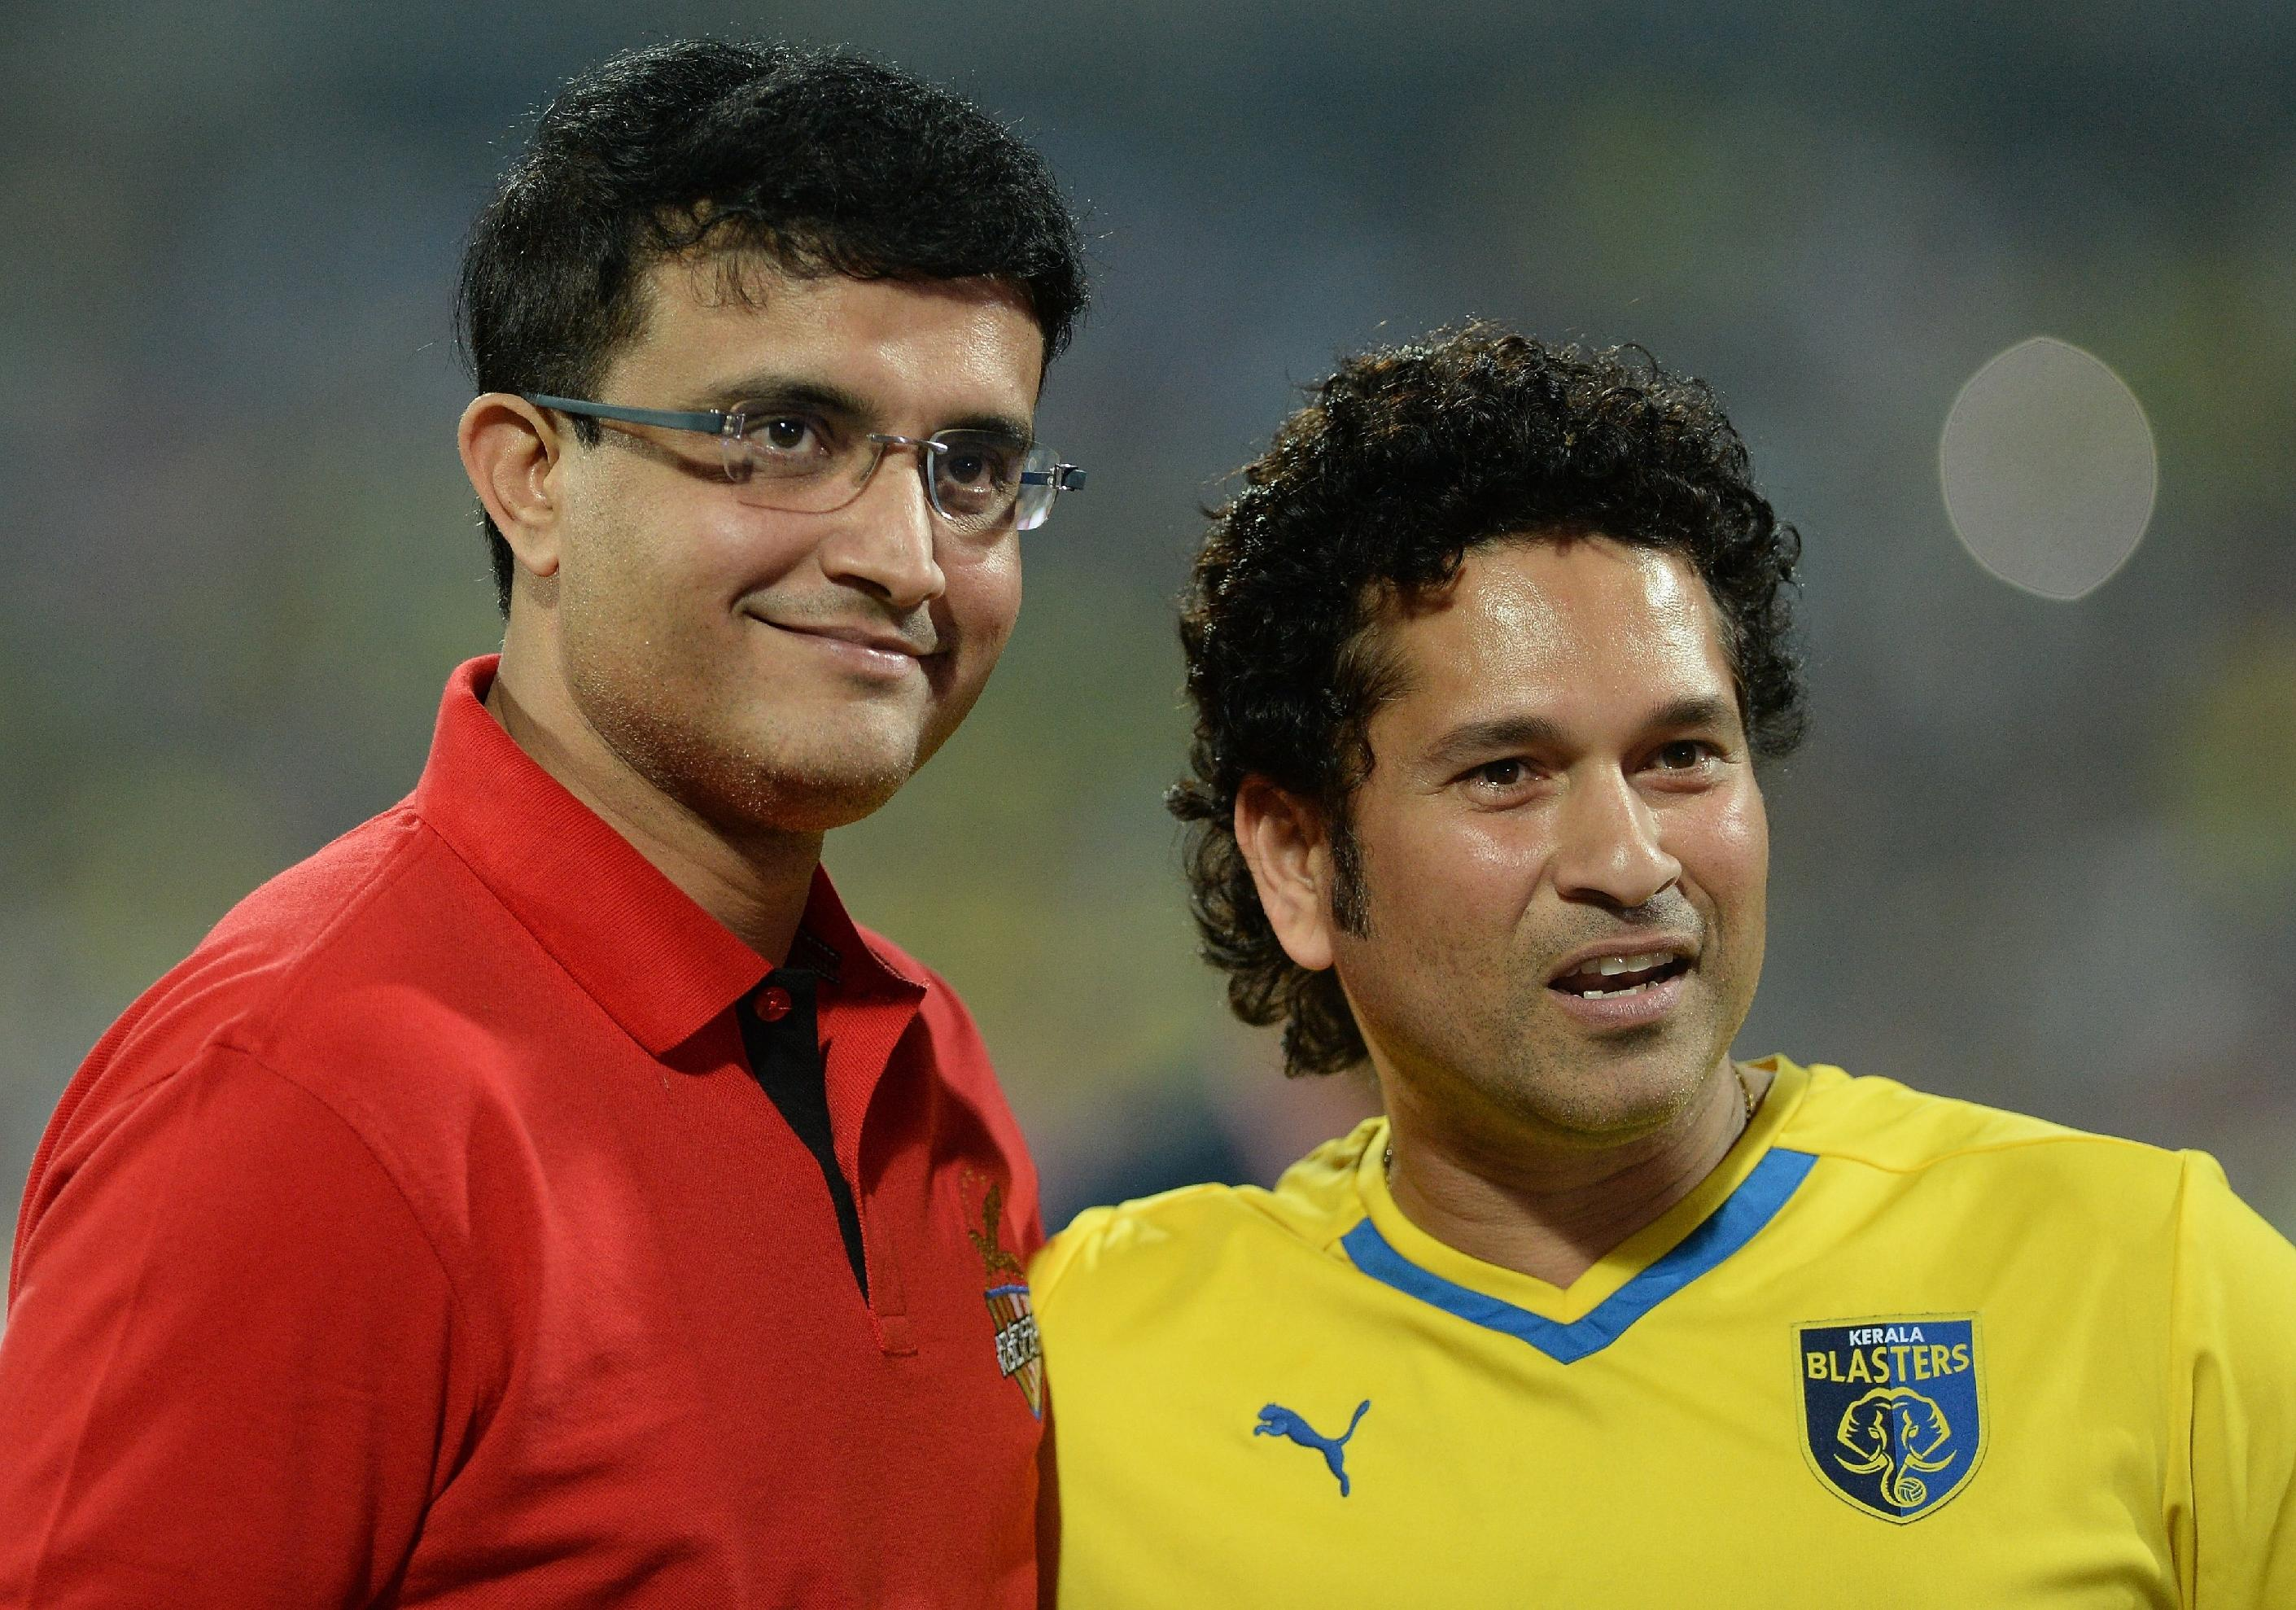 Sachin Tendulkar (right) and Saurav Ganguly await the before the start of the Indian Super League final between Kerala Blasters and Atletico de Kolkata at The D.Y. Patil stadium in Navi Mumbai on December 20, 2014